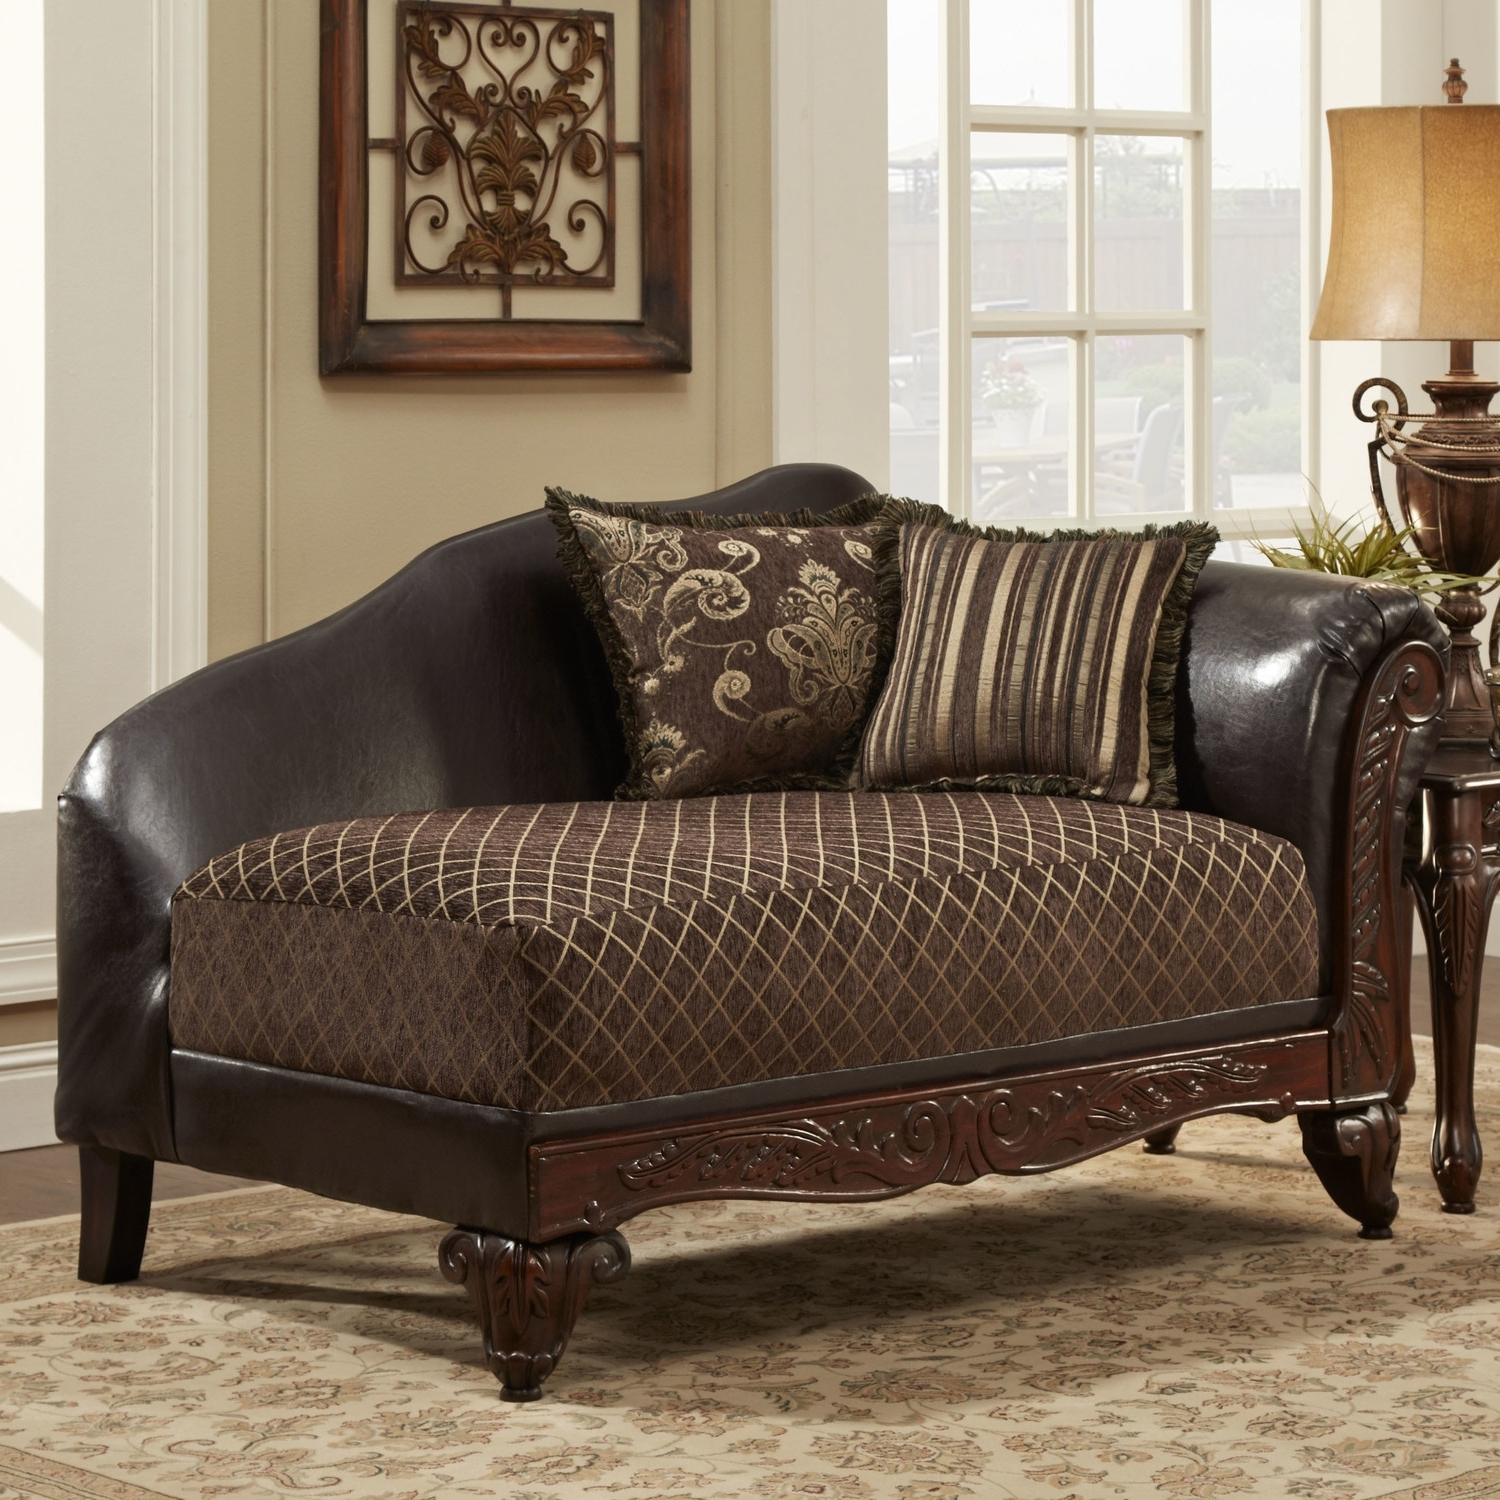 Brown Leather Chaise Lounges Pertaining To Fashionable Wonderful Brown Leather Chaise Lounge With Traditional Chaise (View 6 of 15)